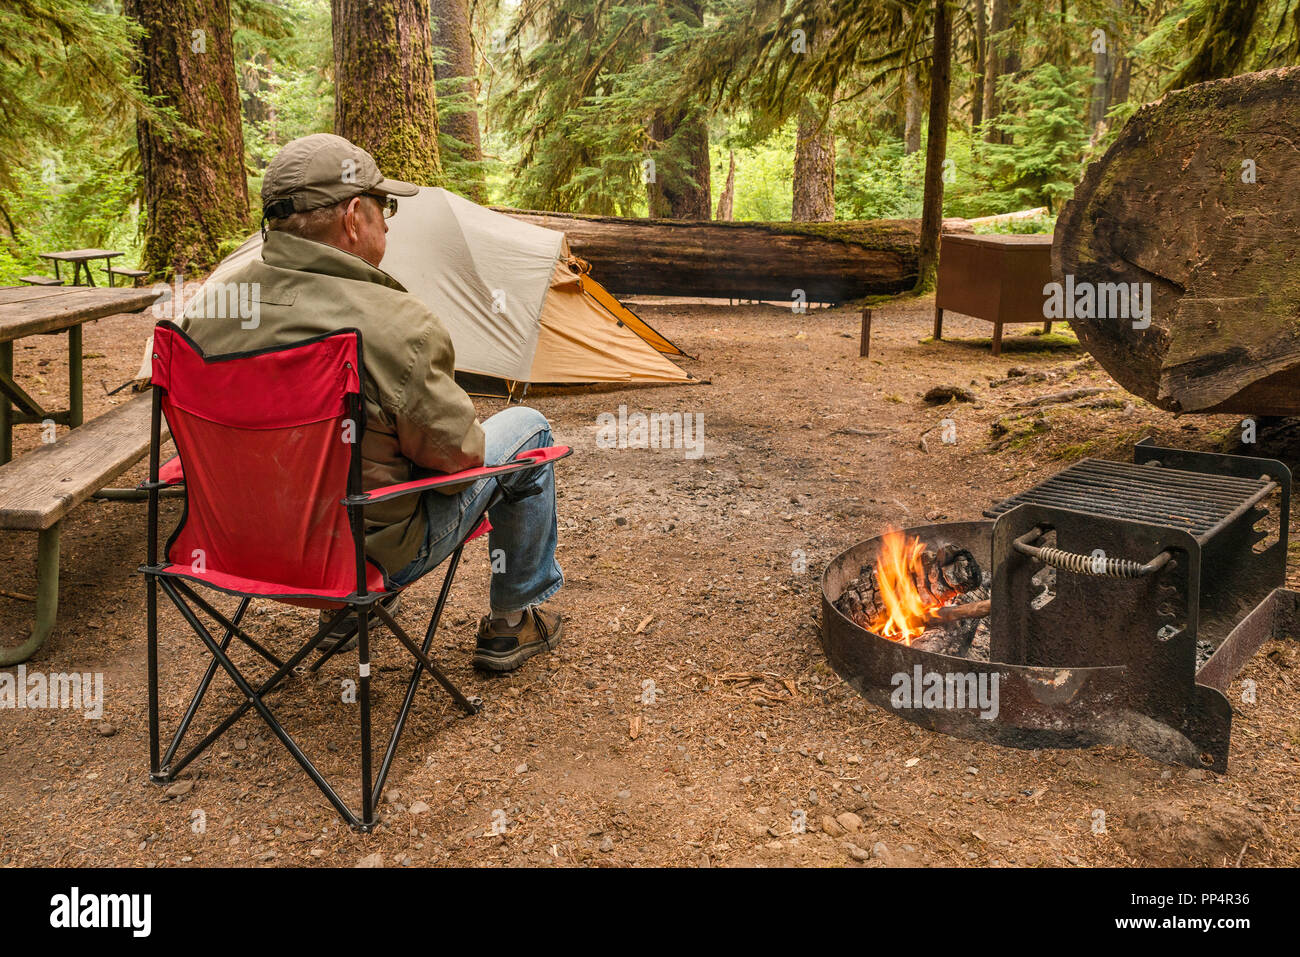 Senior adult relaxing at campfire in rainforest, Sol Duc Campground, Olympic National Park, Washington state, USA - Stock Image